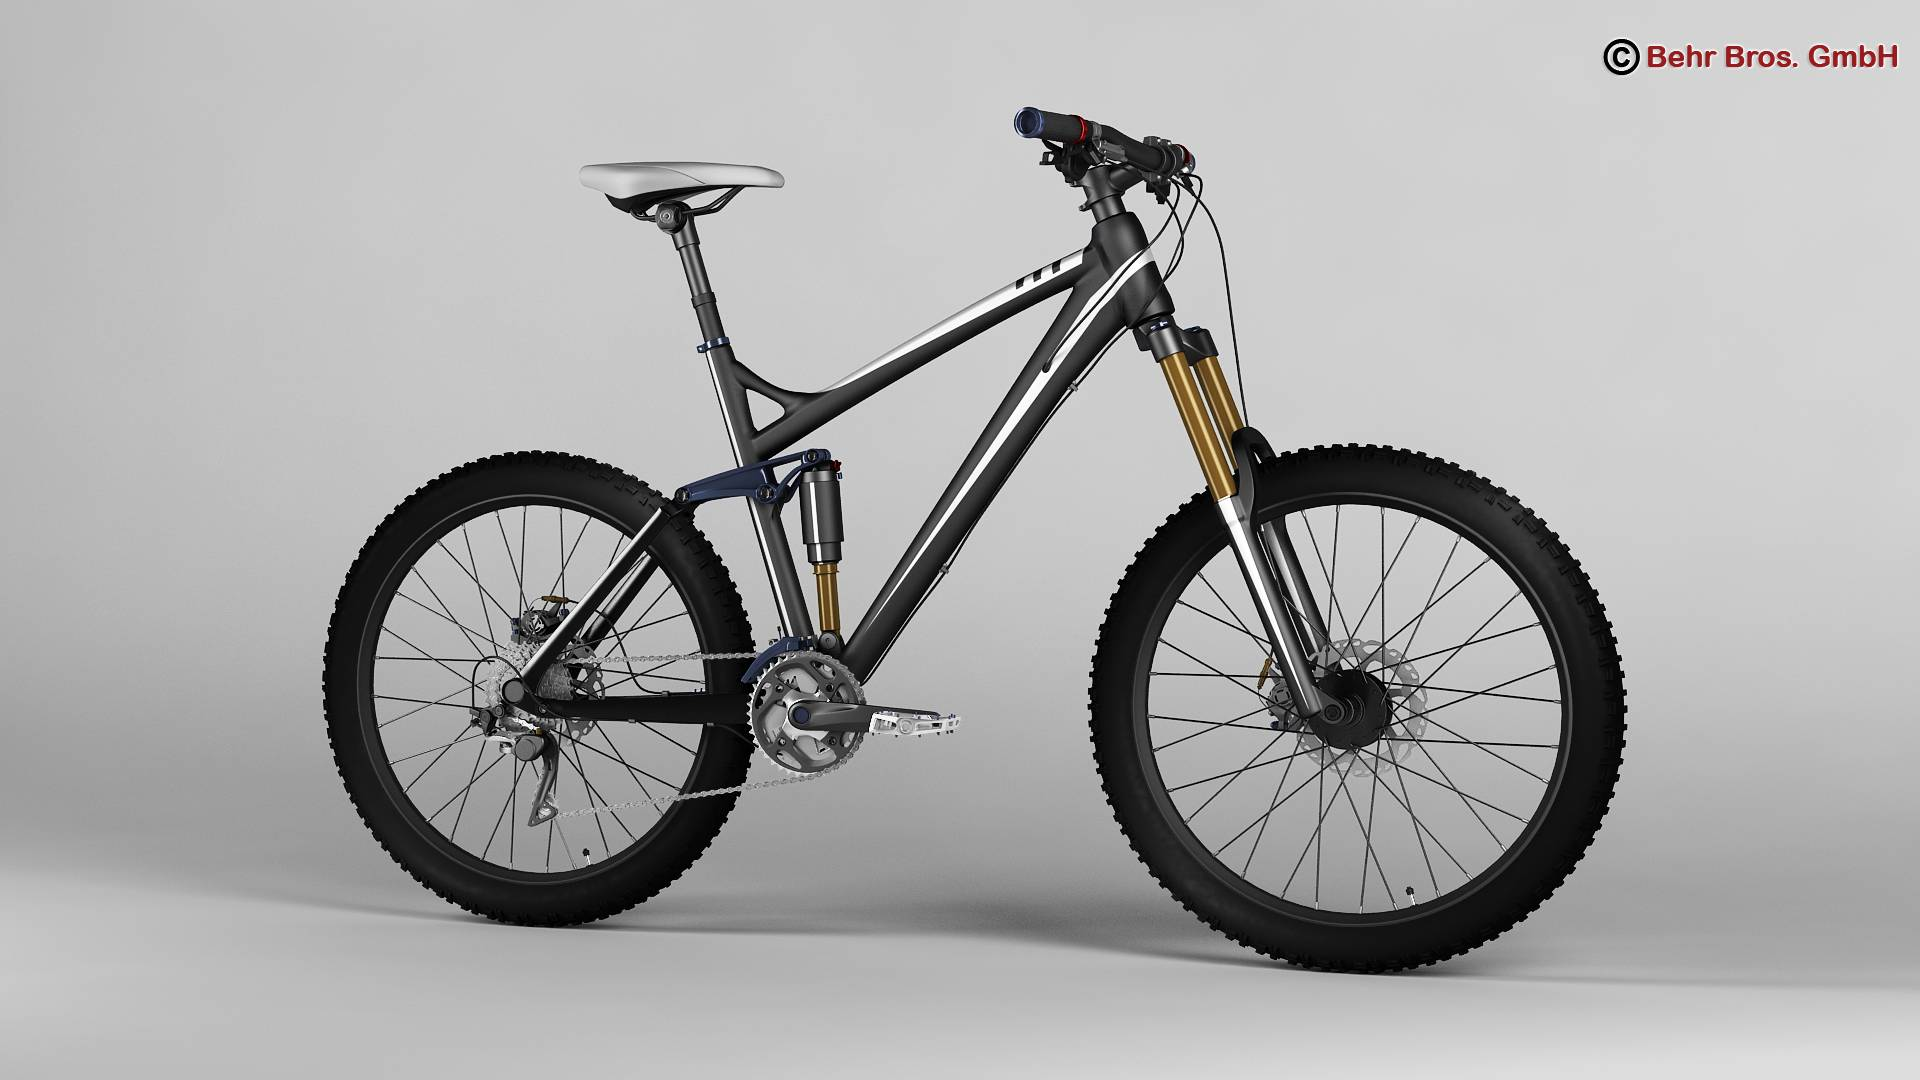 generic mountain bike 3d model 3ds max fbx c4d lwo ma mb obj 160594